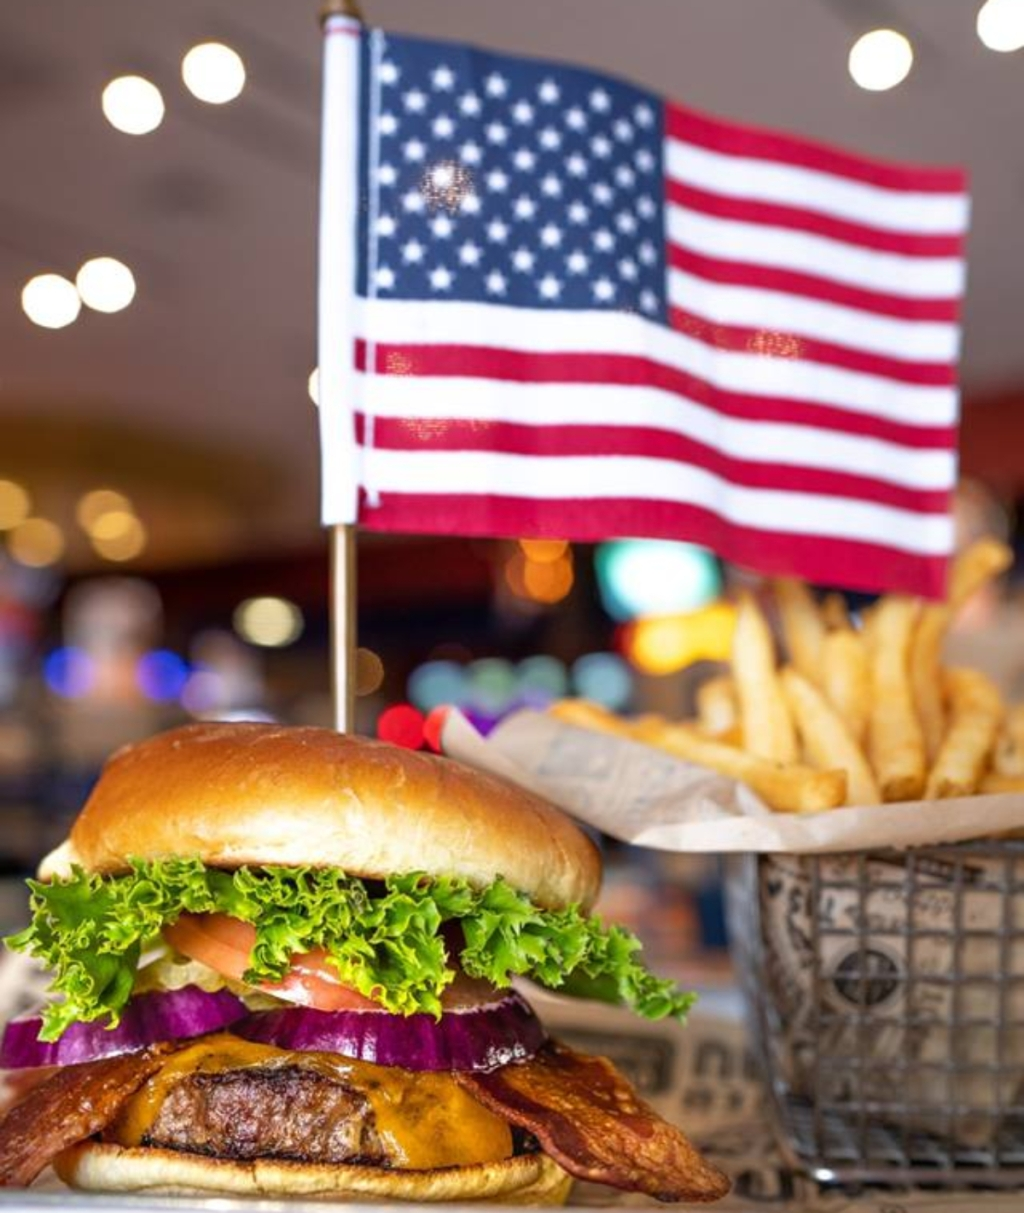 Main Event burger with American flag and fries